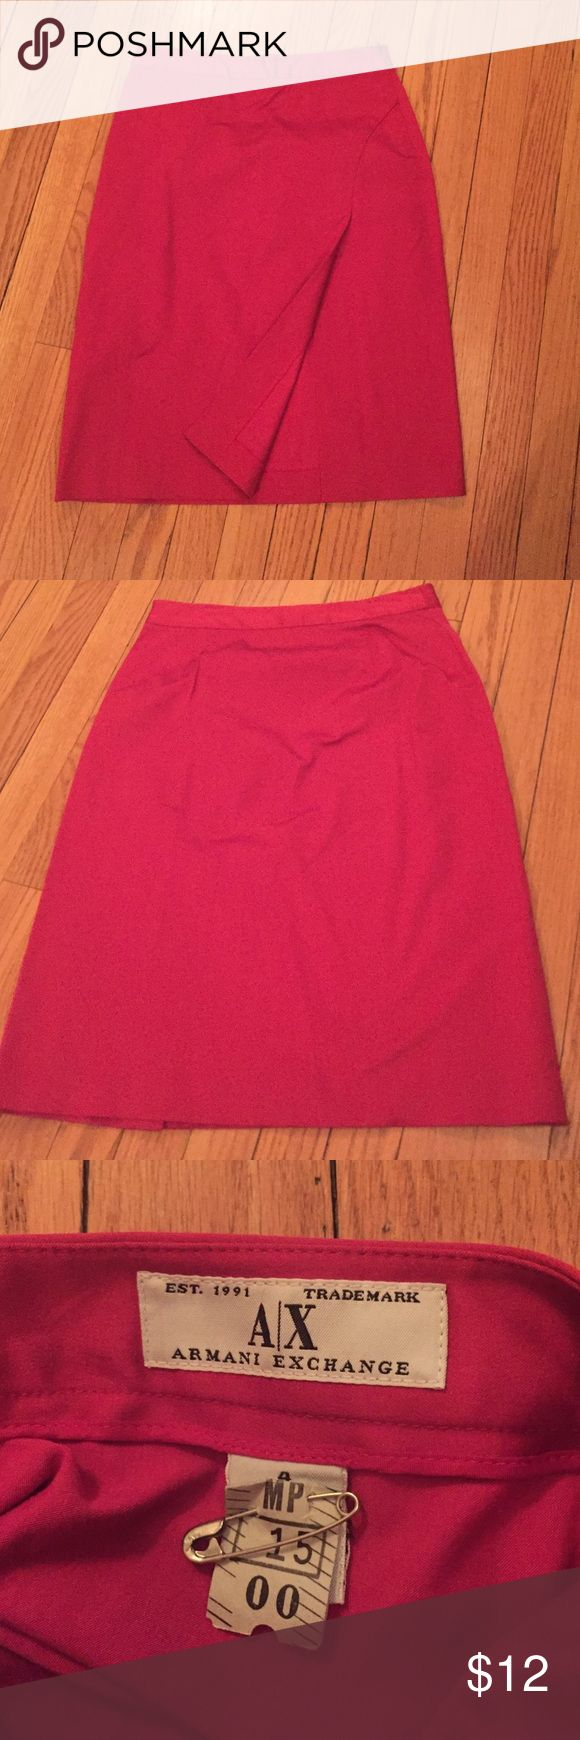 Armani exchange skirt Red, mint condition, side zip Armani Exchange Skirts